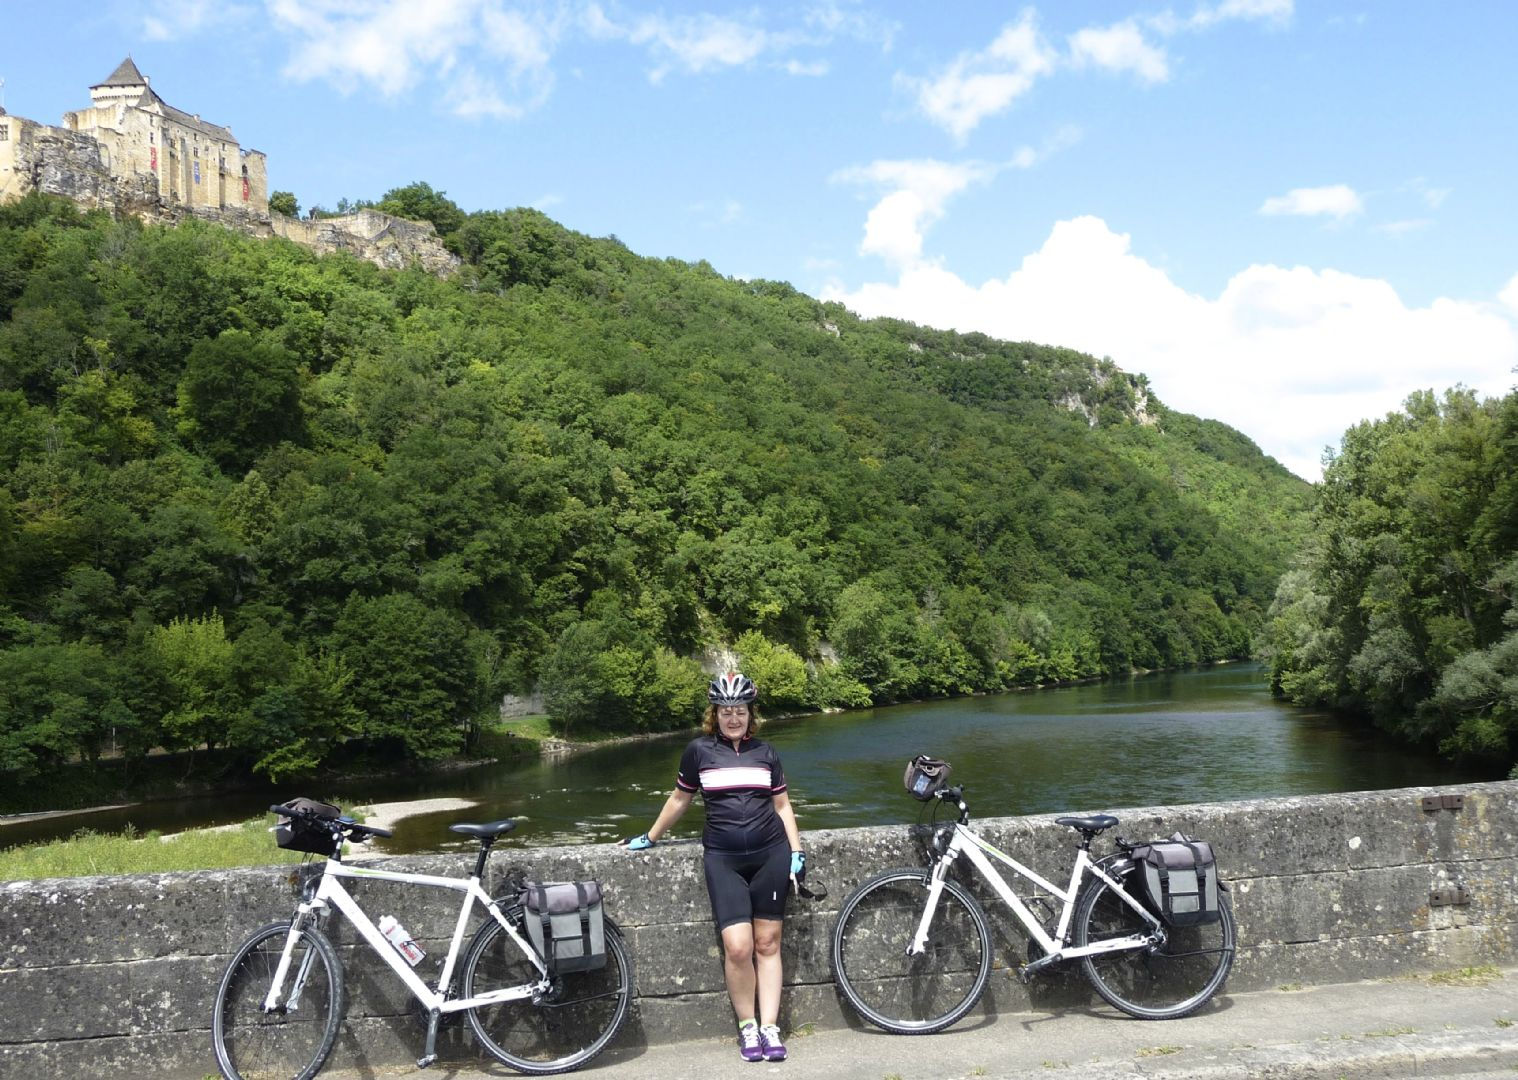 dordognecycling7.jpg - France - Dordogne Delights - Self-Guided Leisure Cycling Holiday - Leisure Cycling